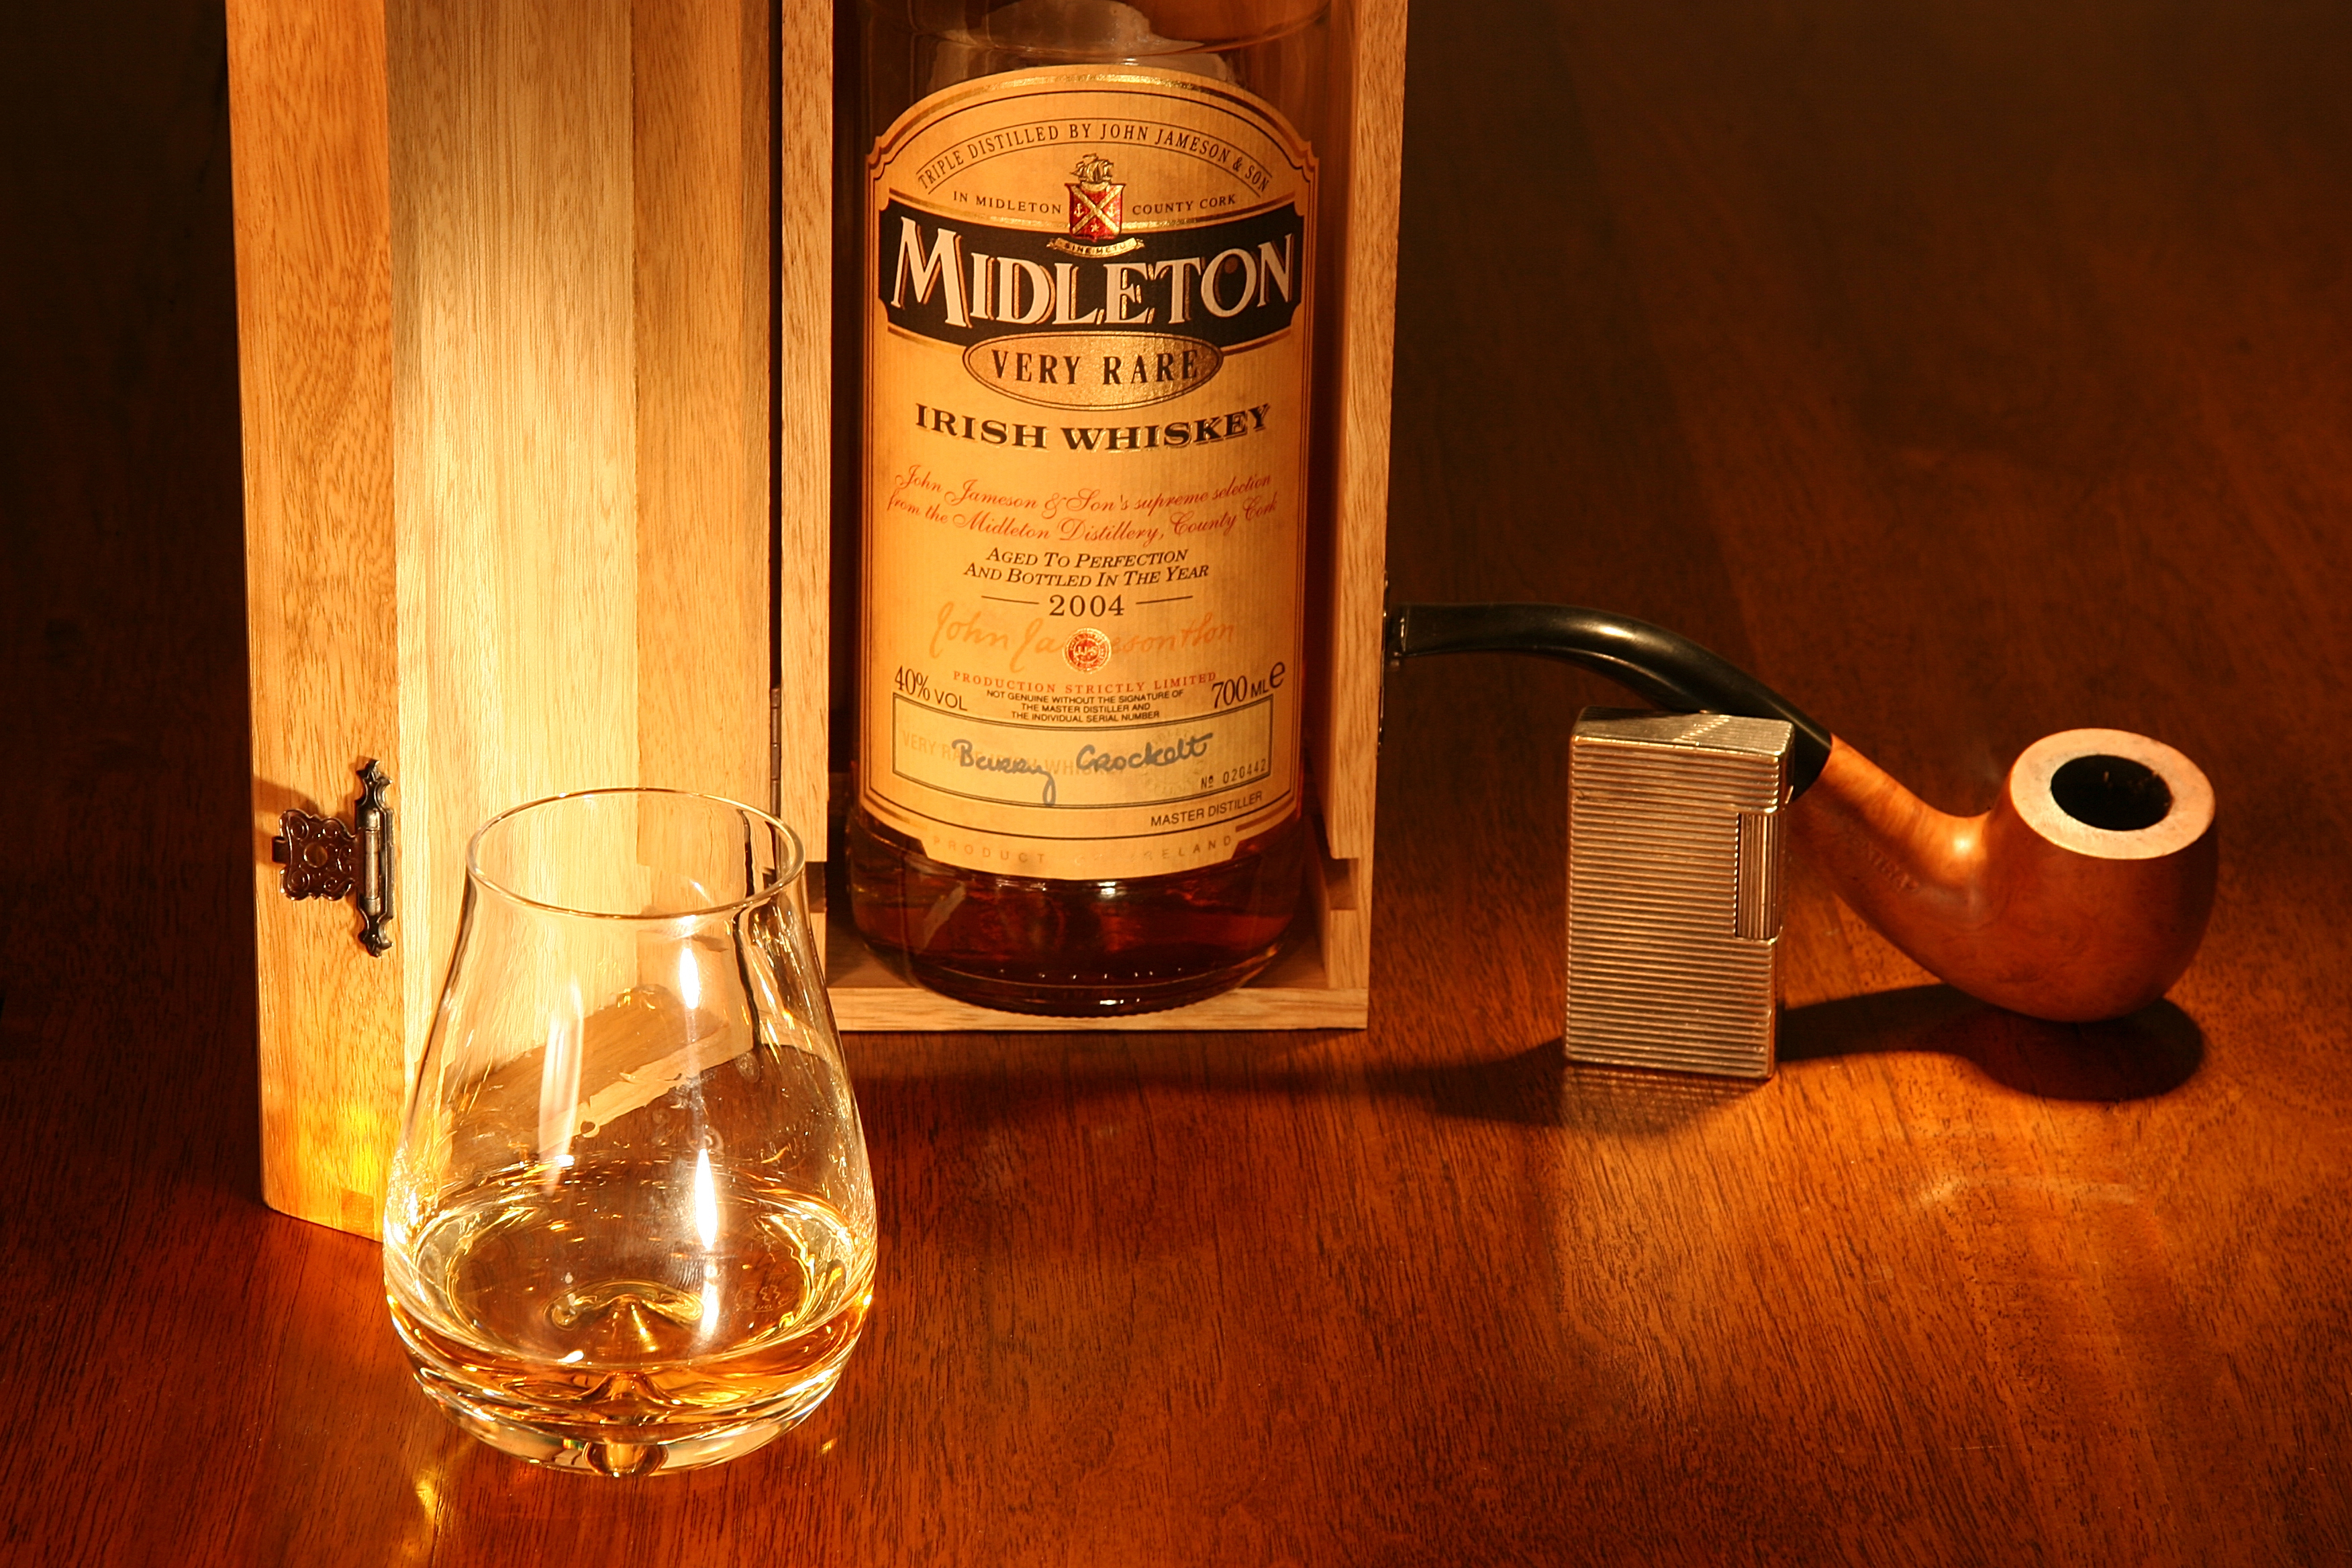 Midleton and pipe.jpg - Midleton and pipe